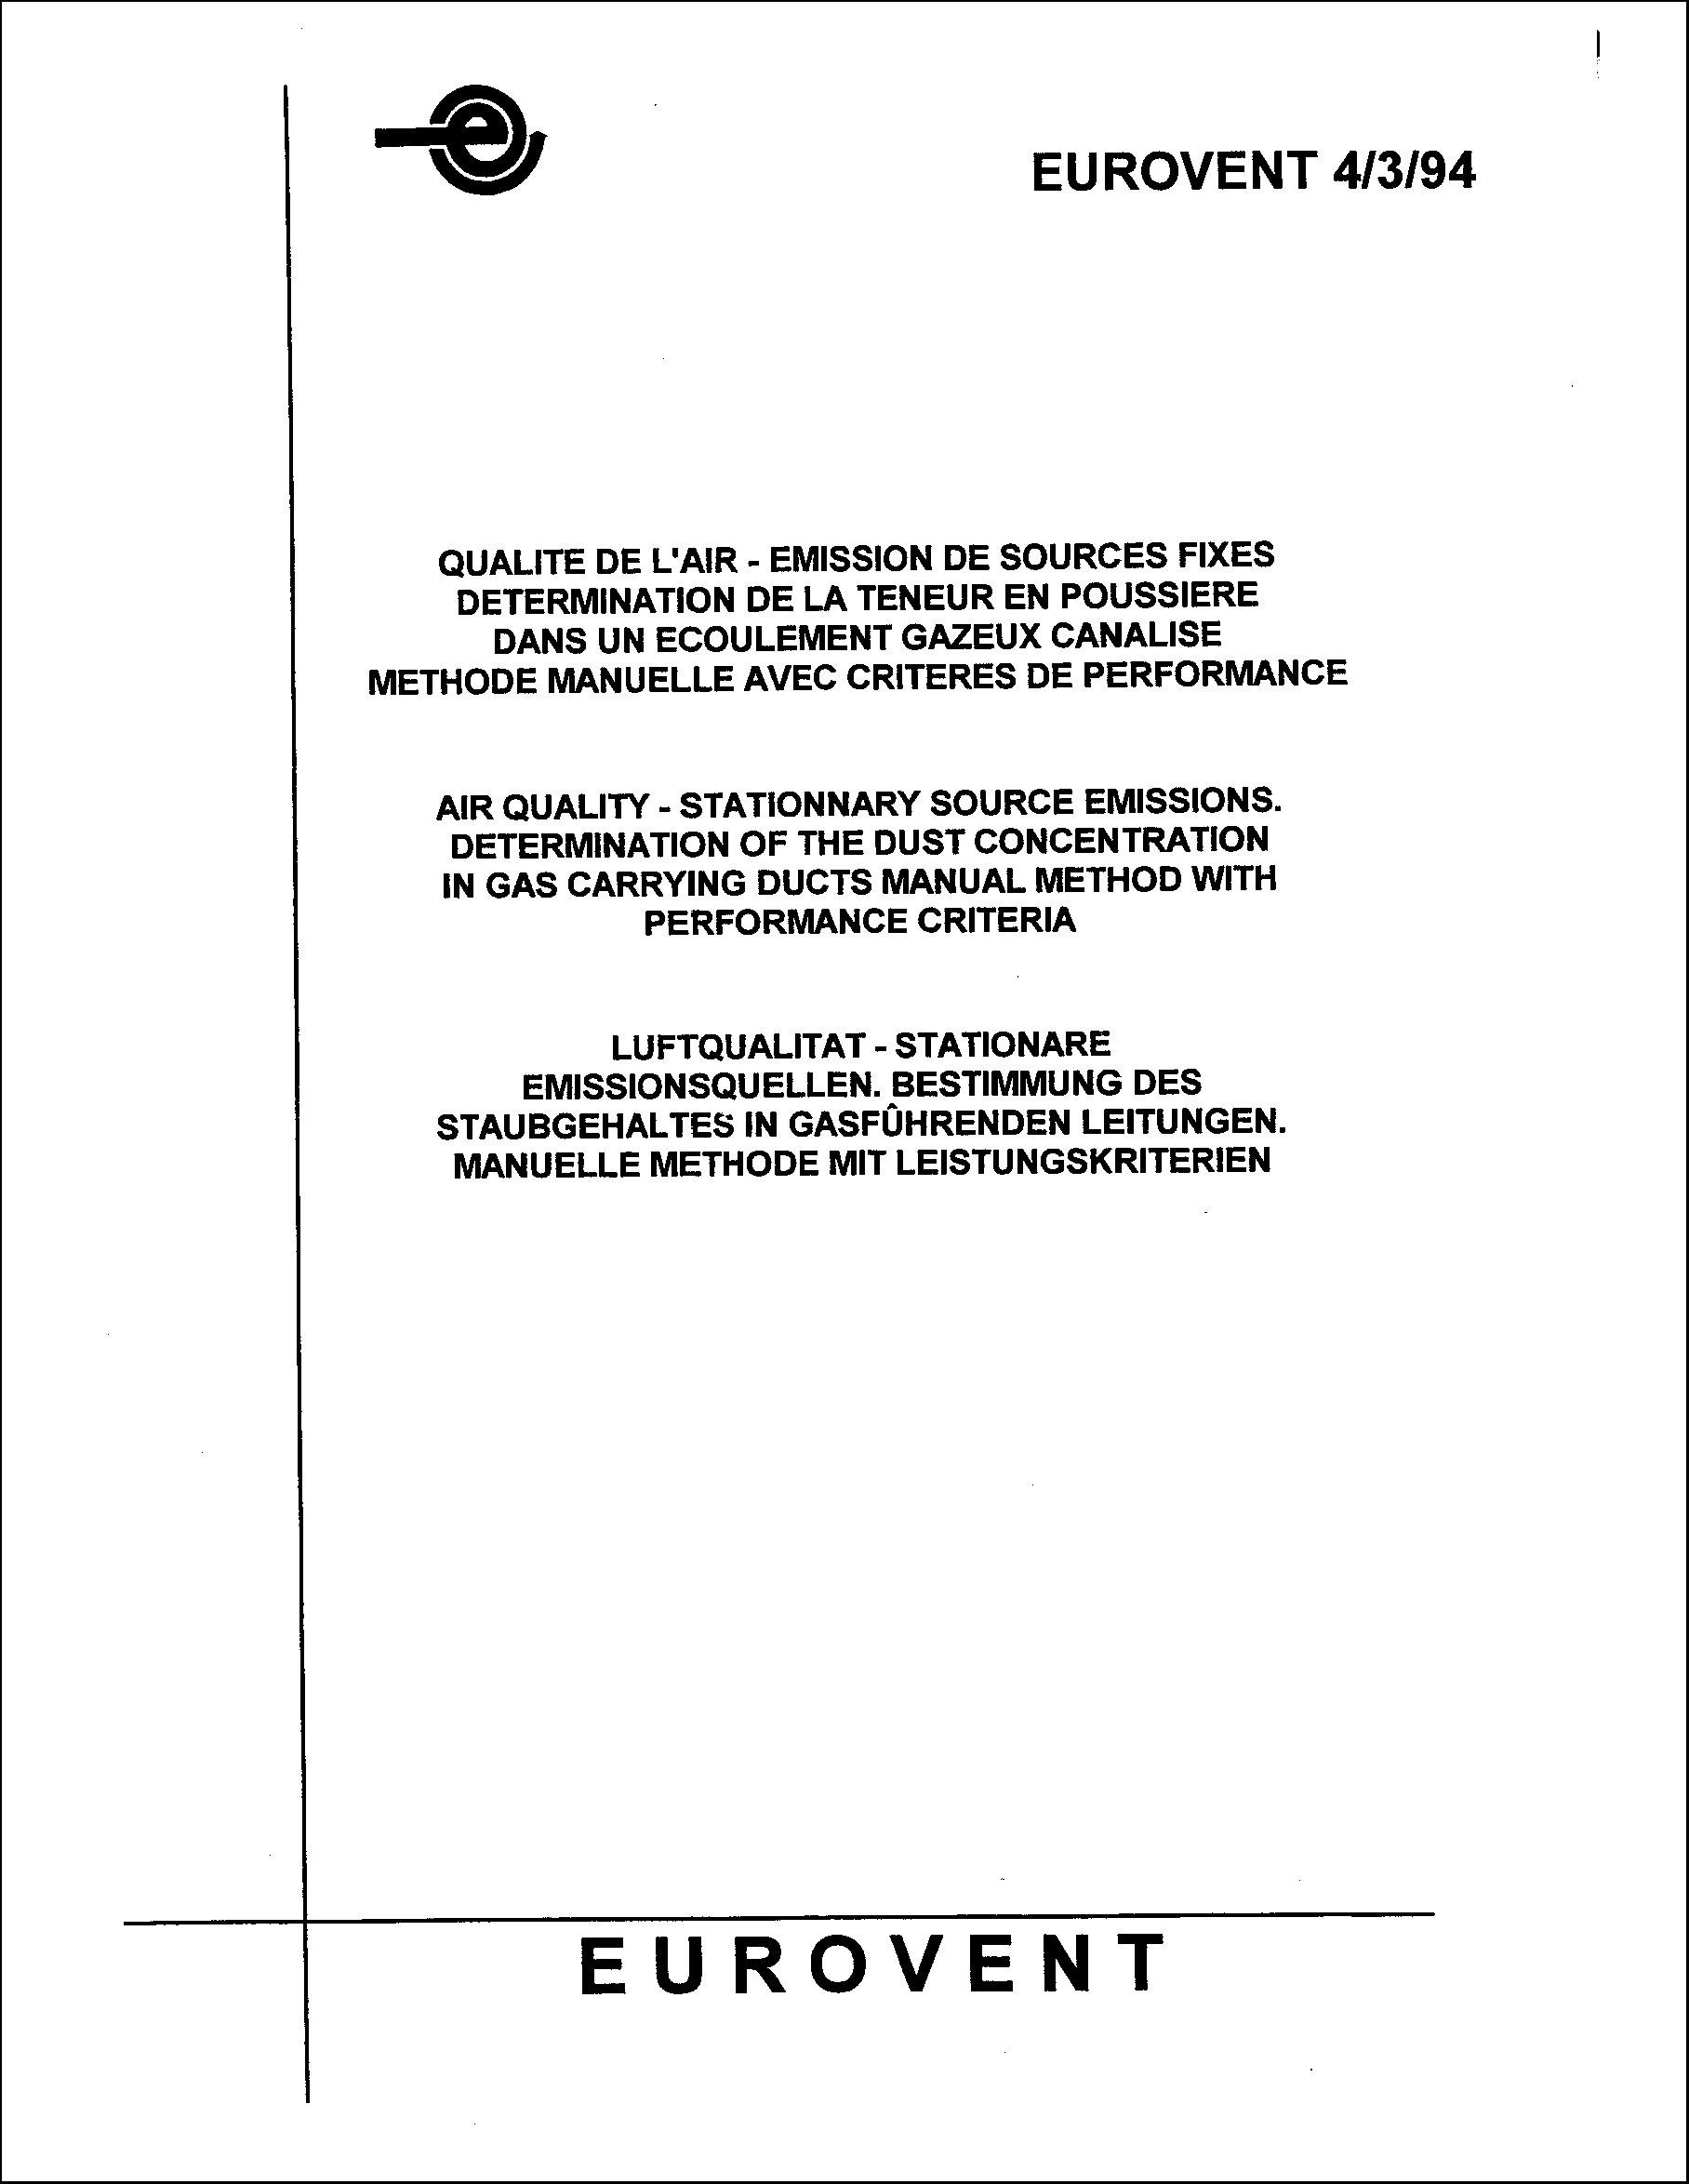 1994 - Determination of the dust concentration in gas carrying ducts